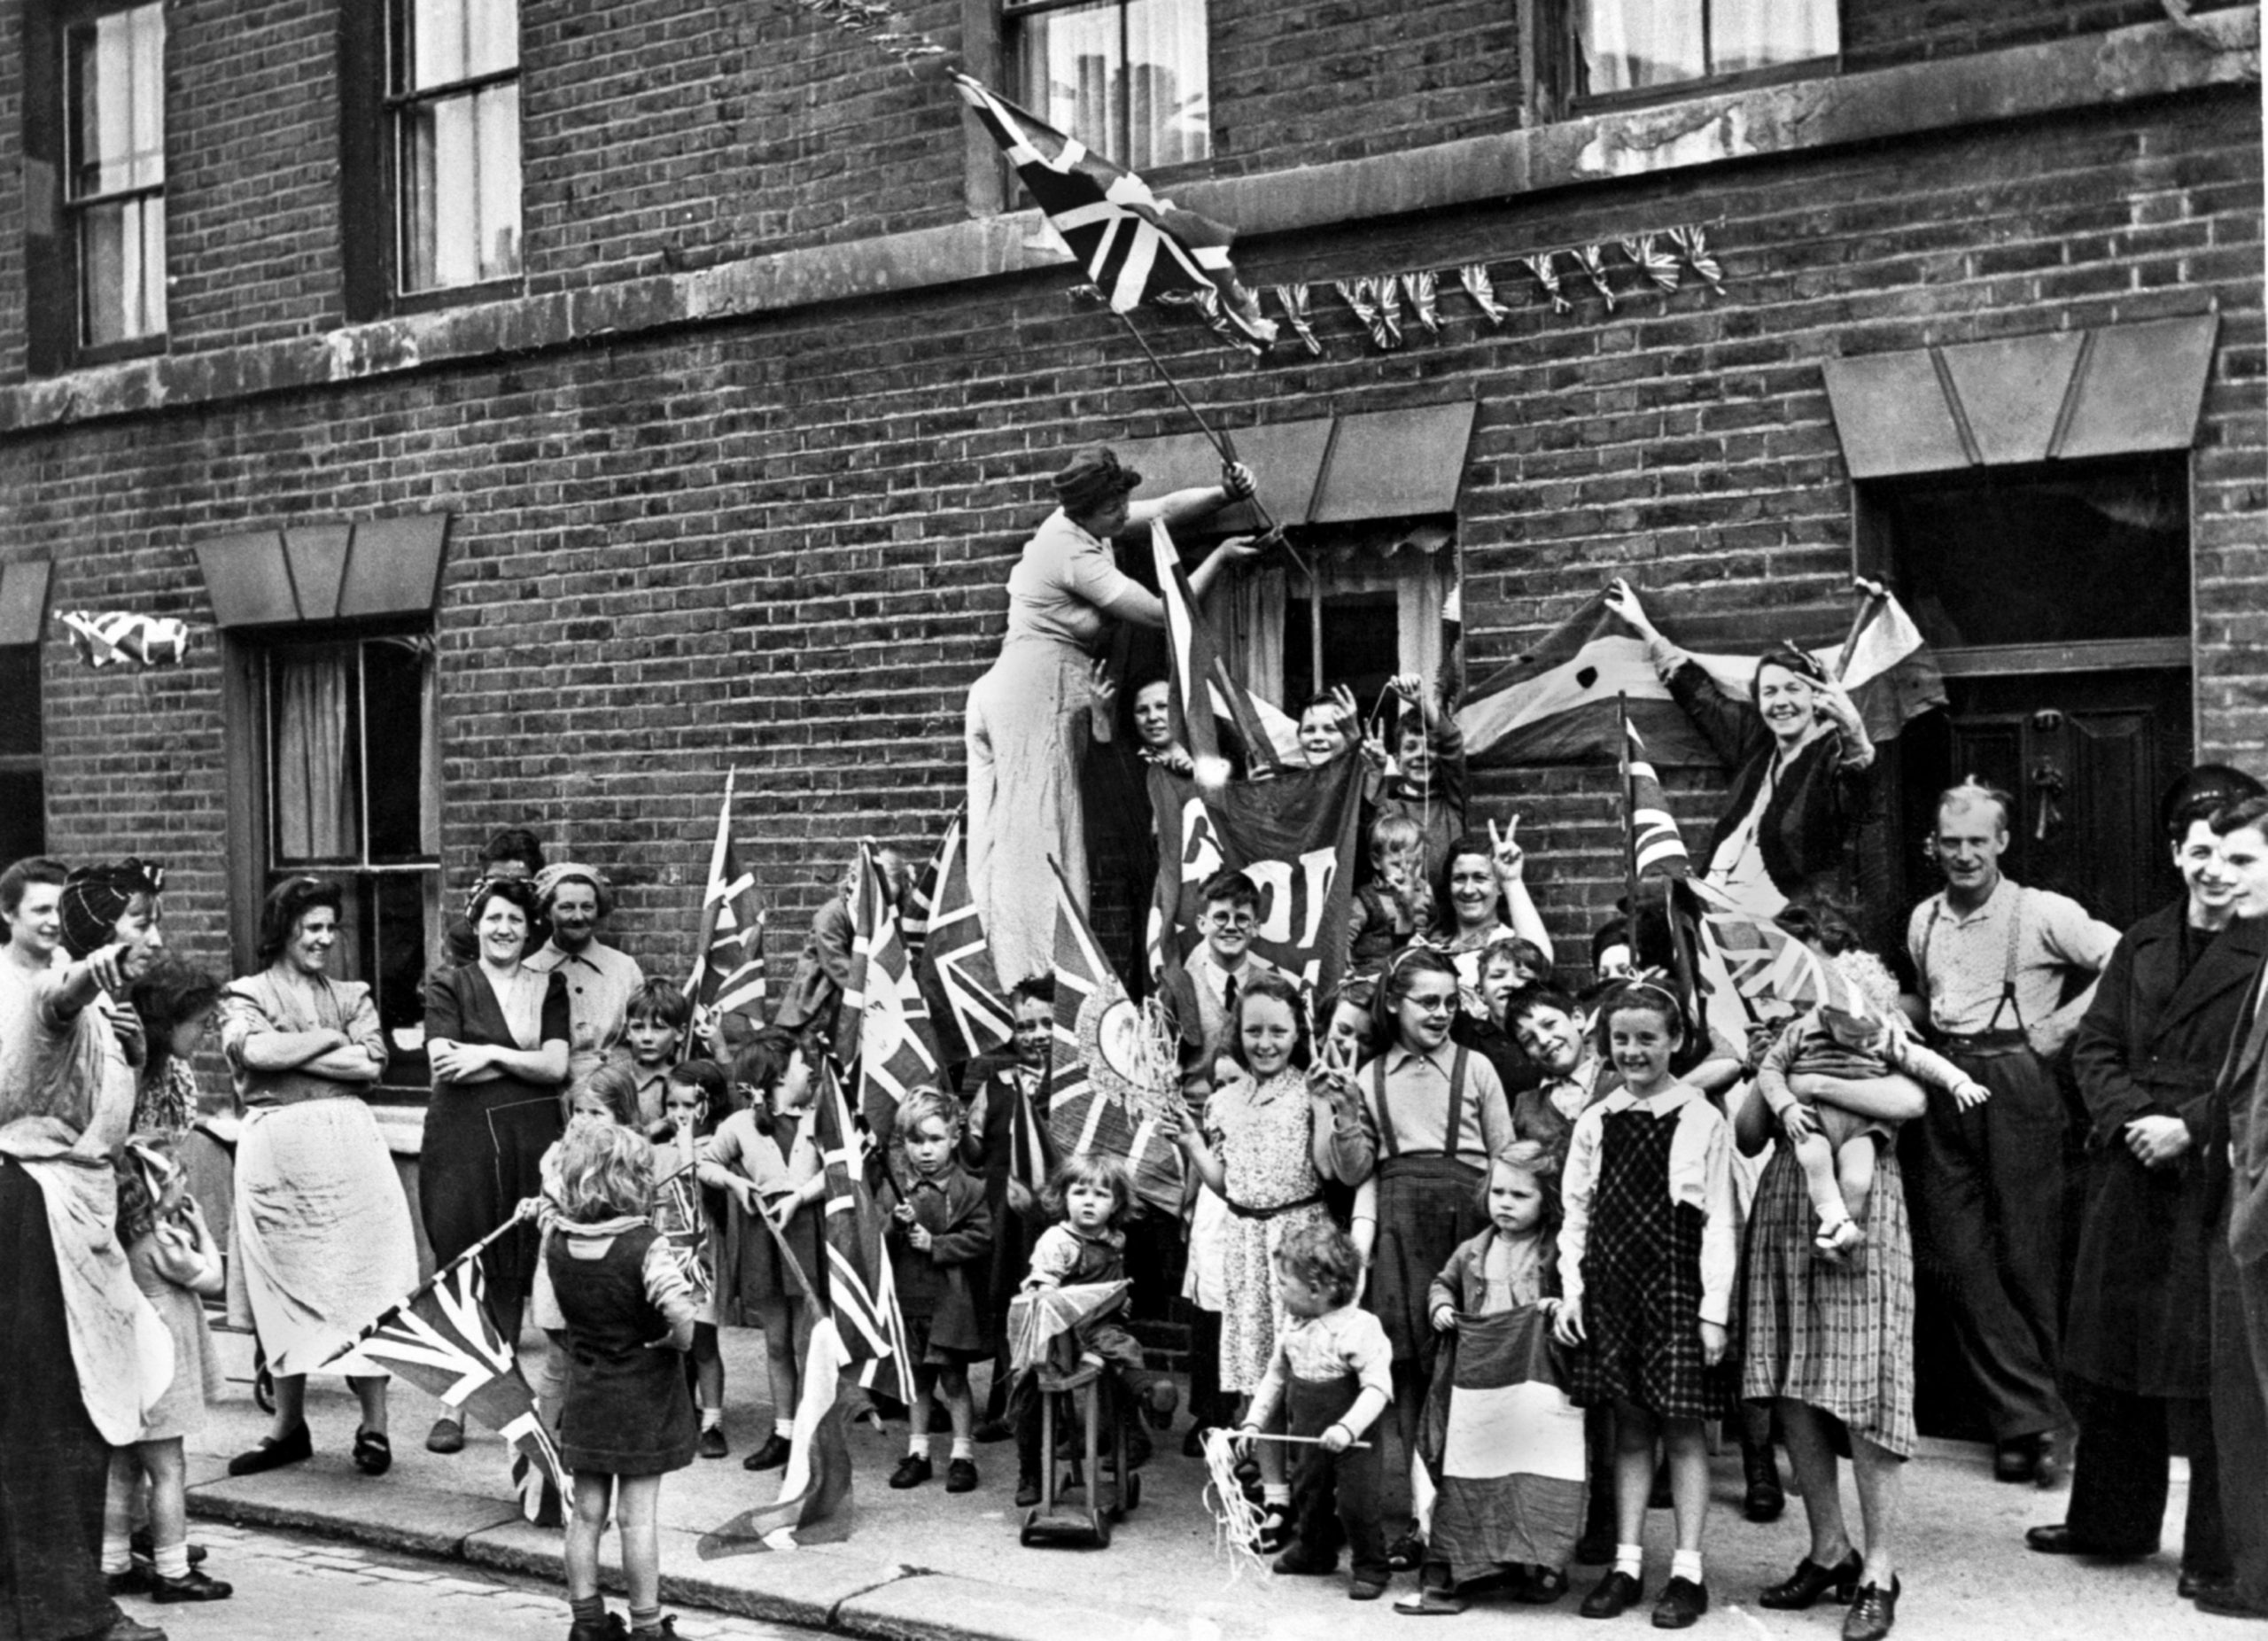 VE day celebrations in London 1945.